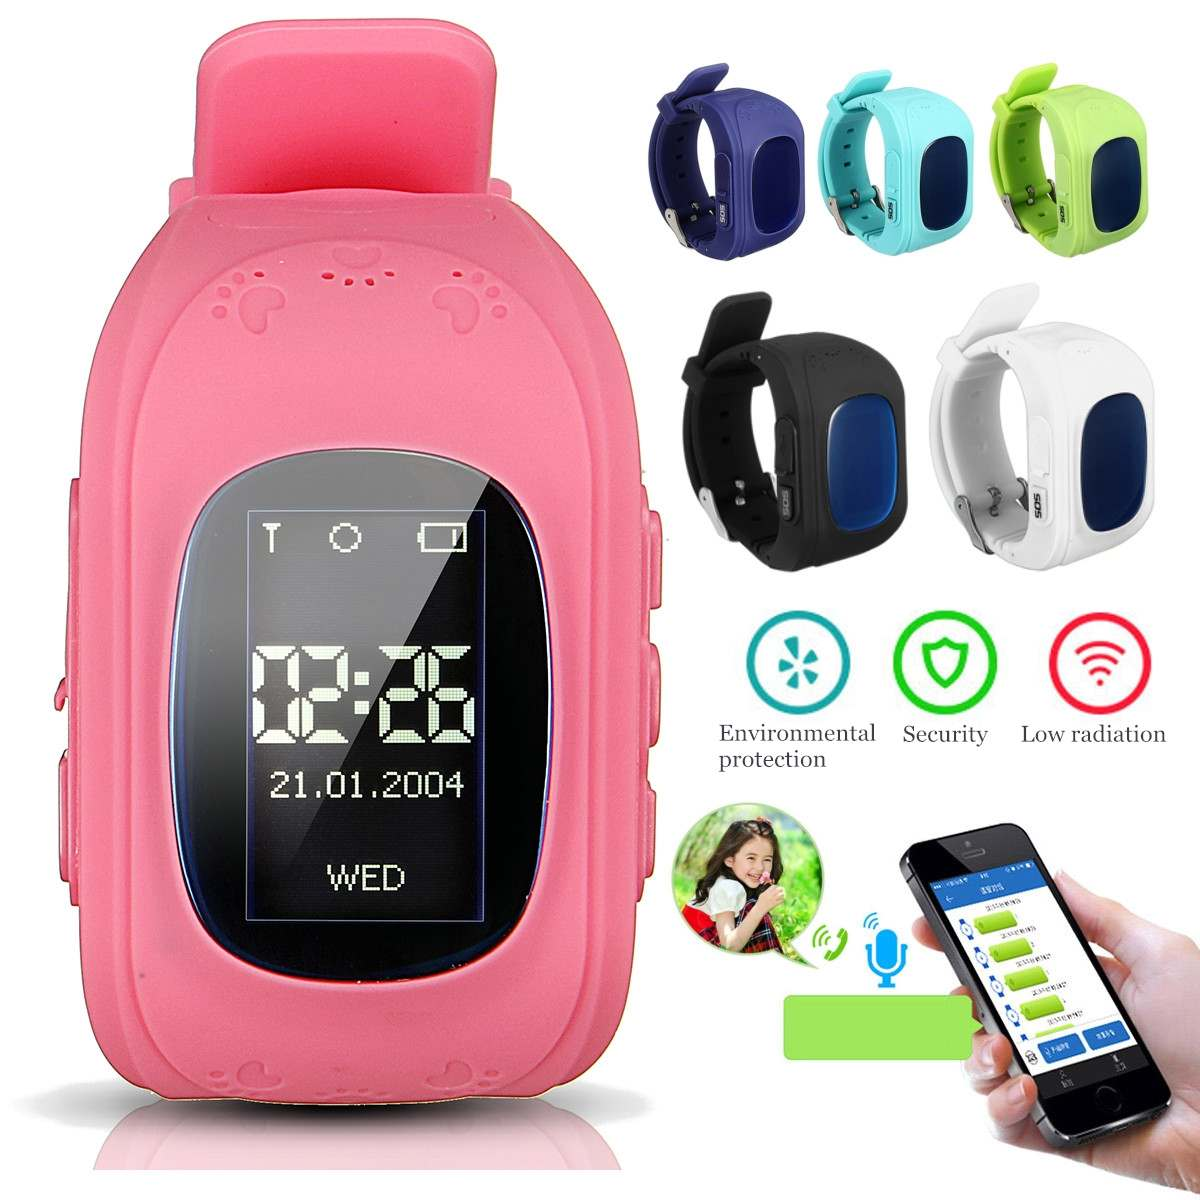 Wristwatch Kids Activity-Tracker Children Gifts 6-Colors Smart GPS Positioning Remote-Turn-Off